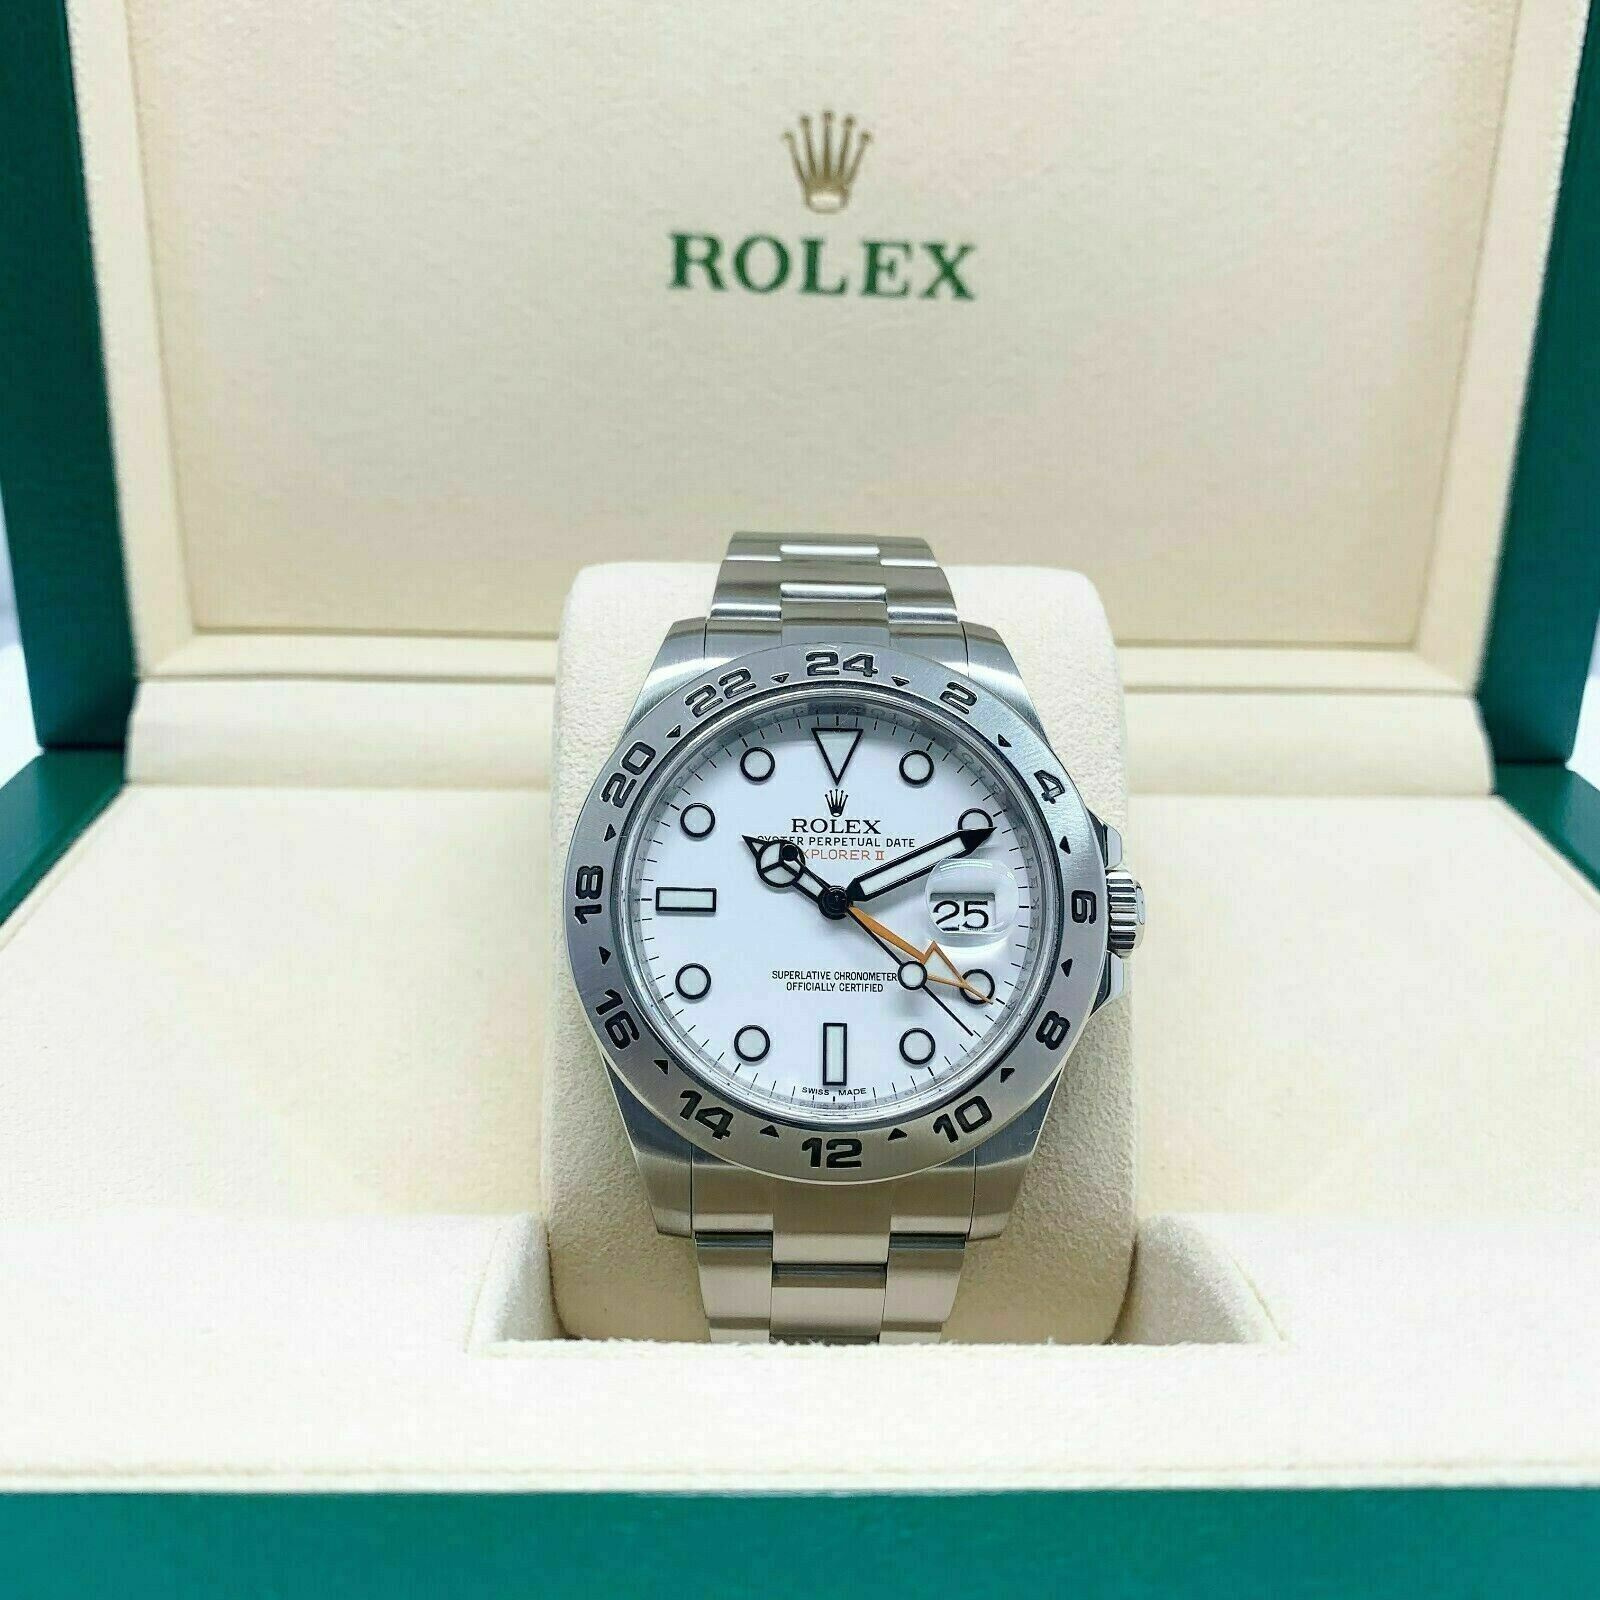 Rolex 42MM Polar Explorer II Stainless Watch Ref # 216570 Engraved Serial